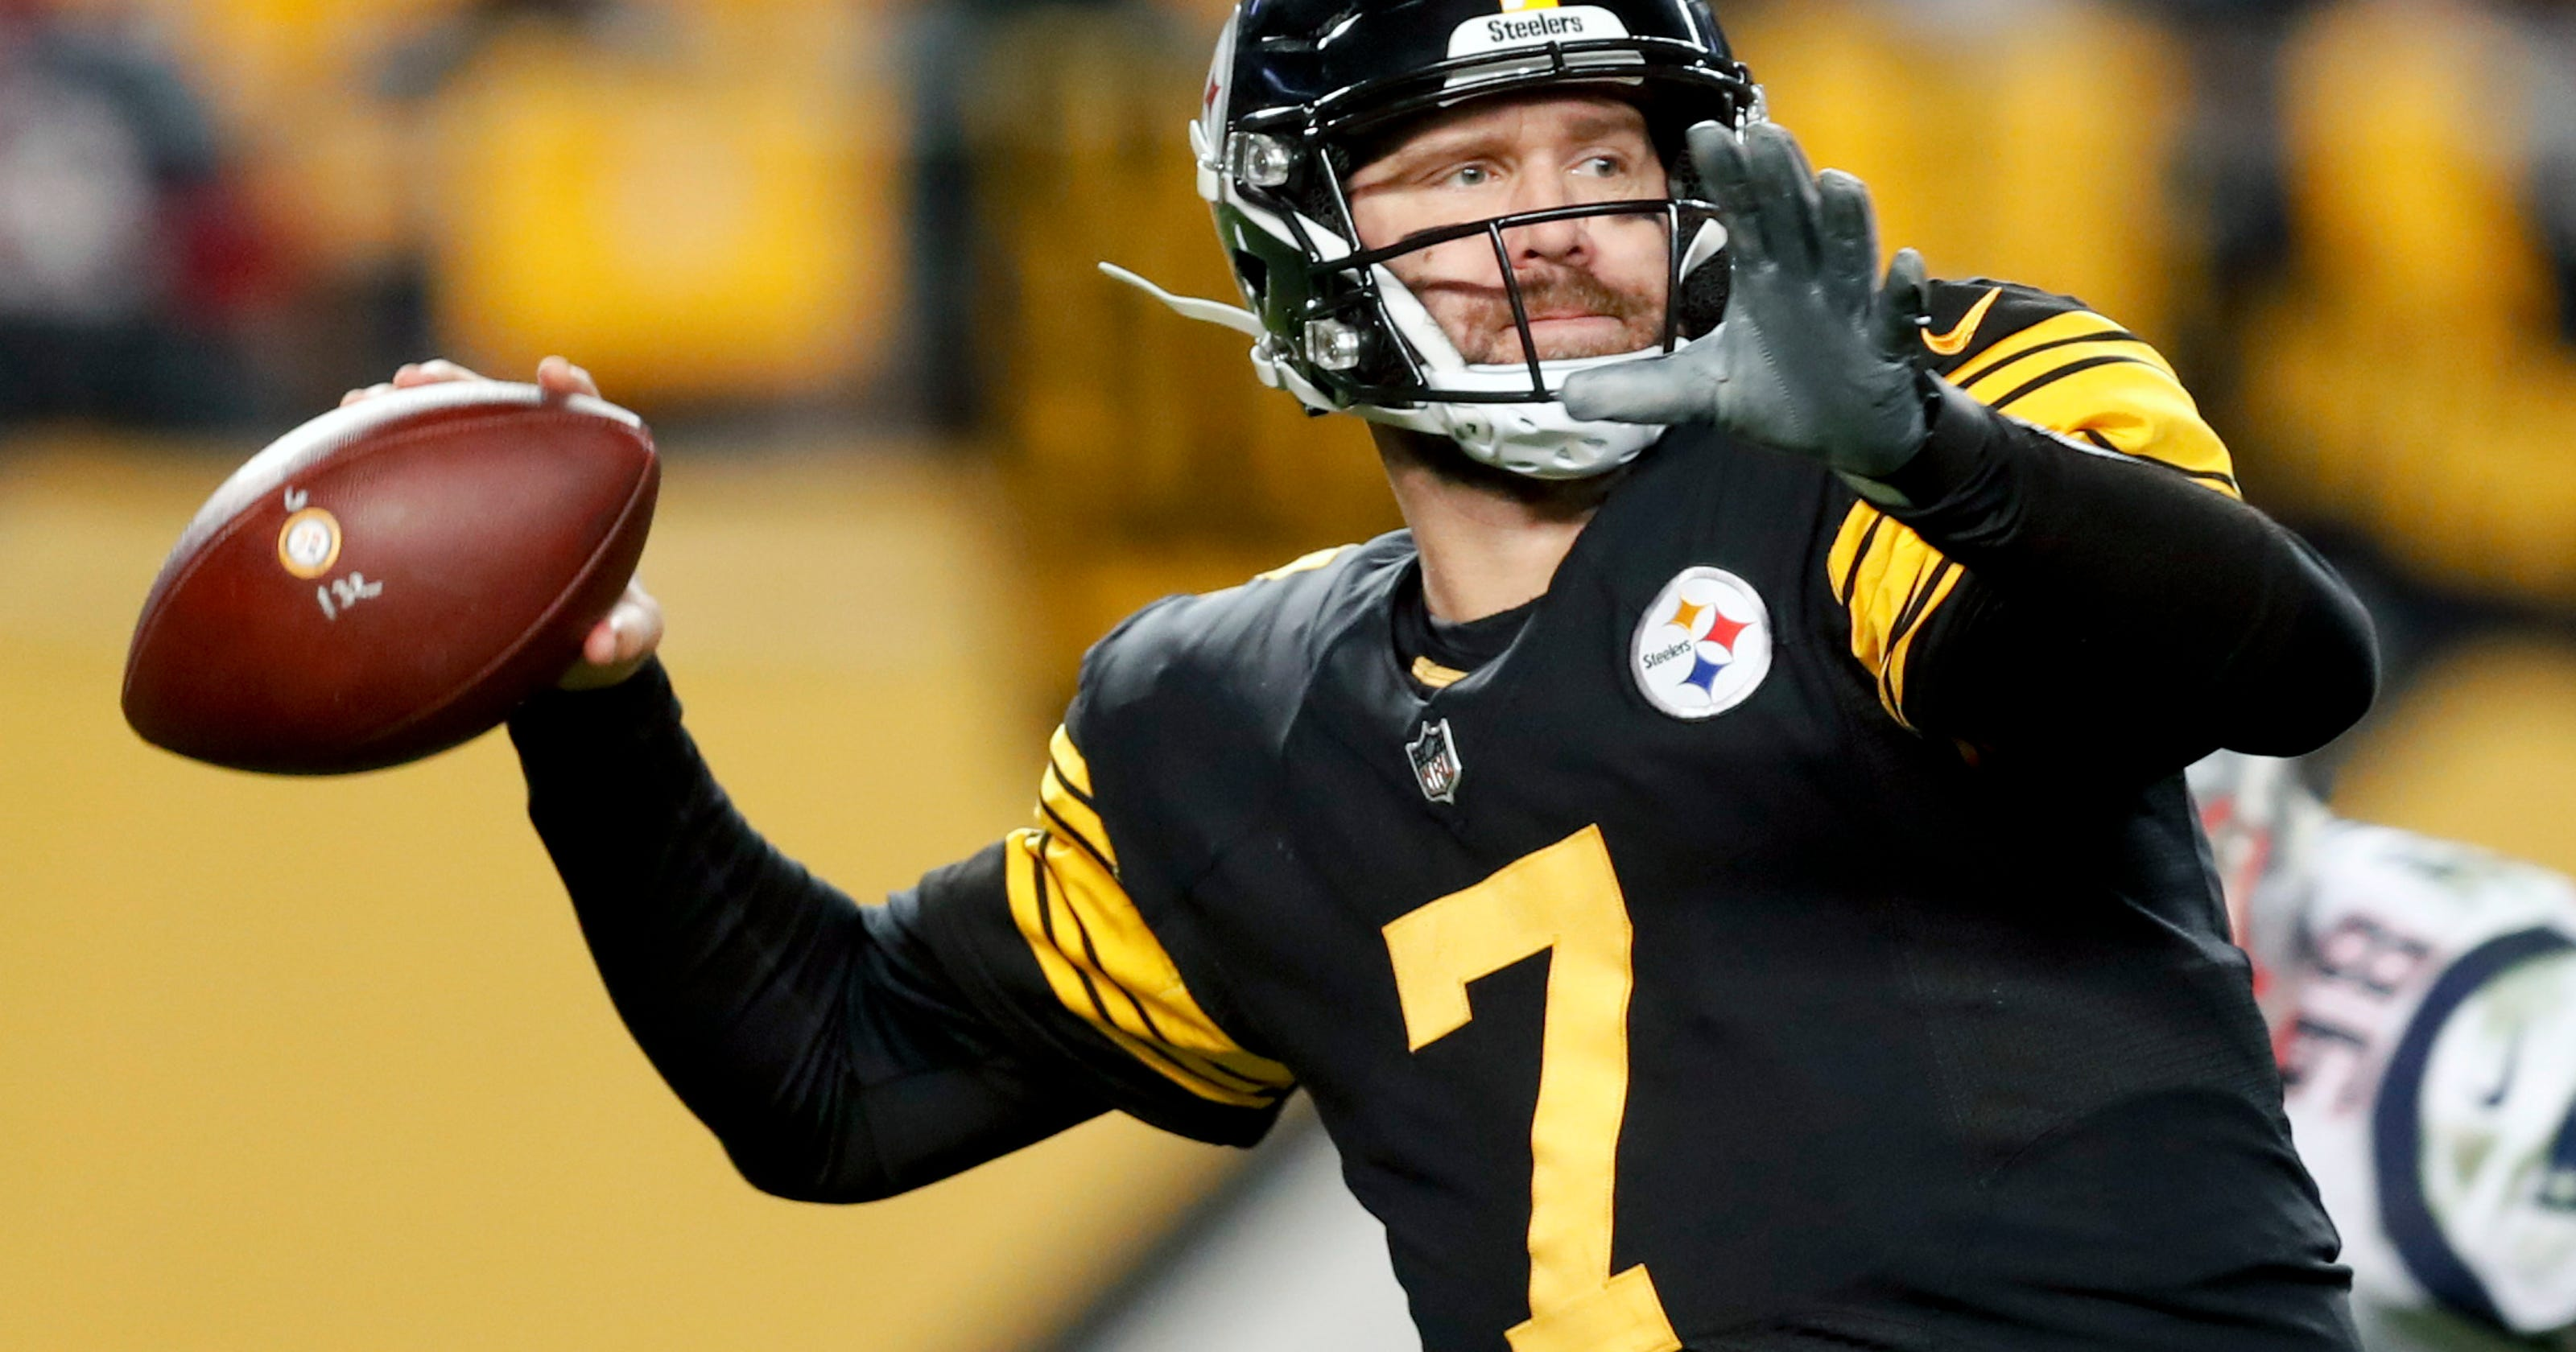 Roethlisberger, 37, to remain with Steelers through 2021